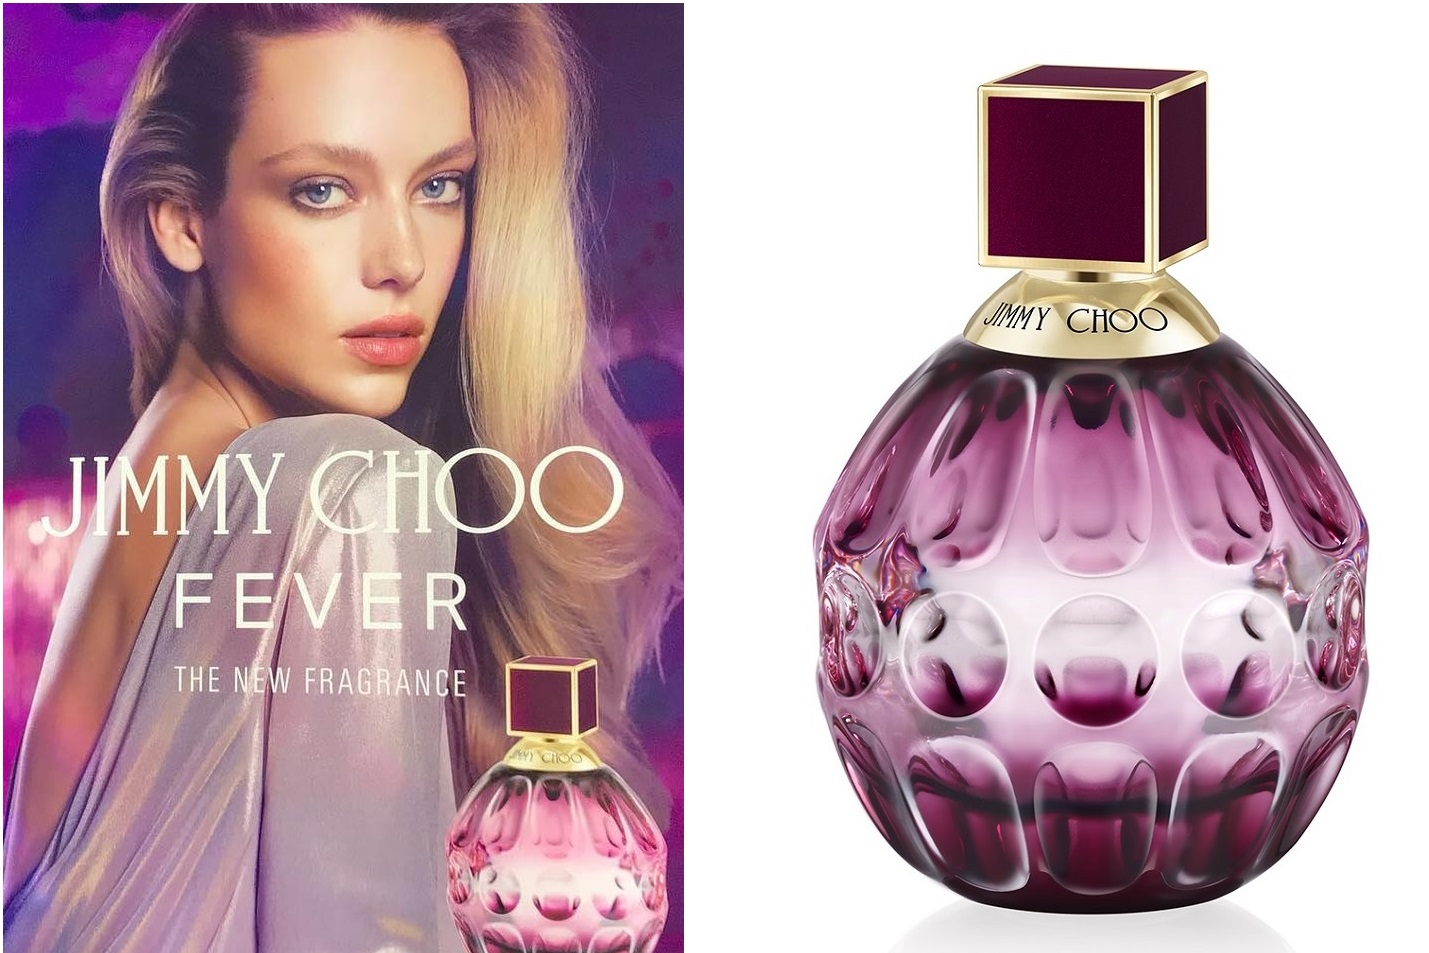 jimmy choo fever banner